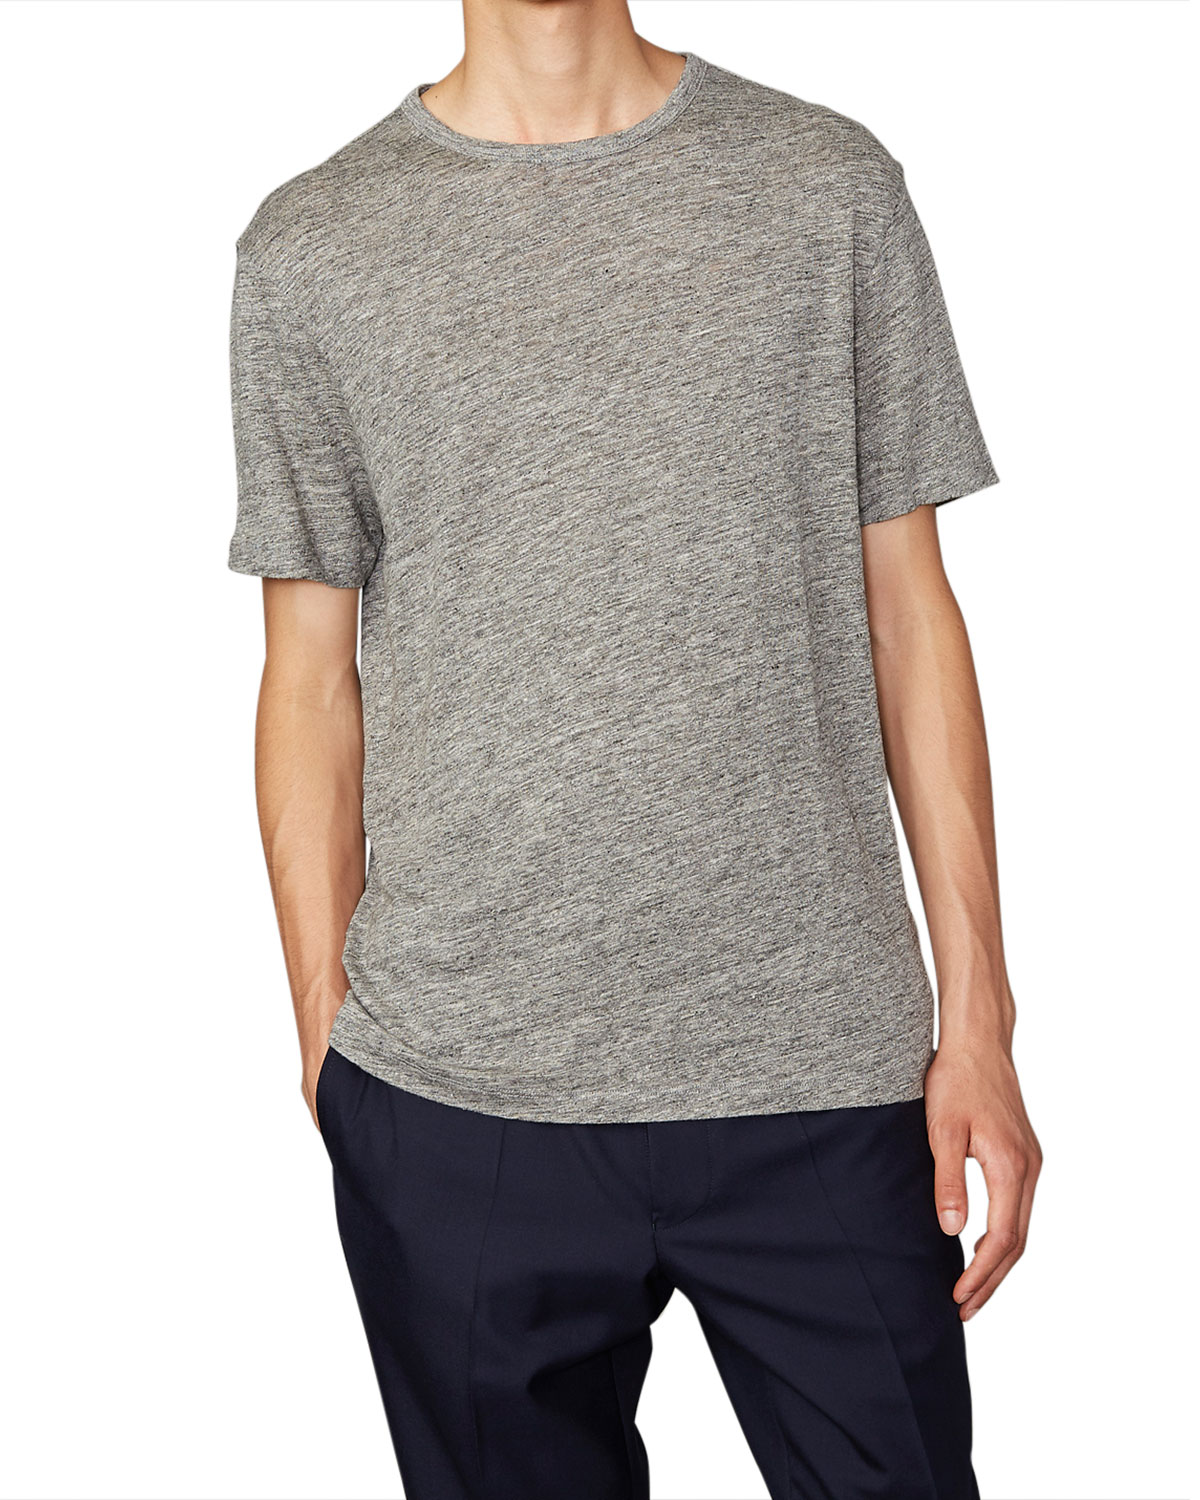 Men's Heathered Linen T-Shirt